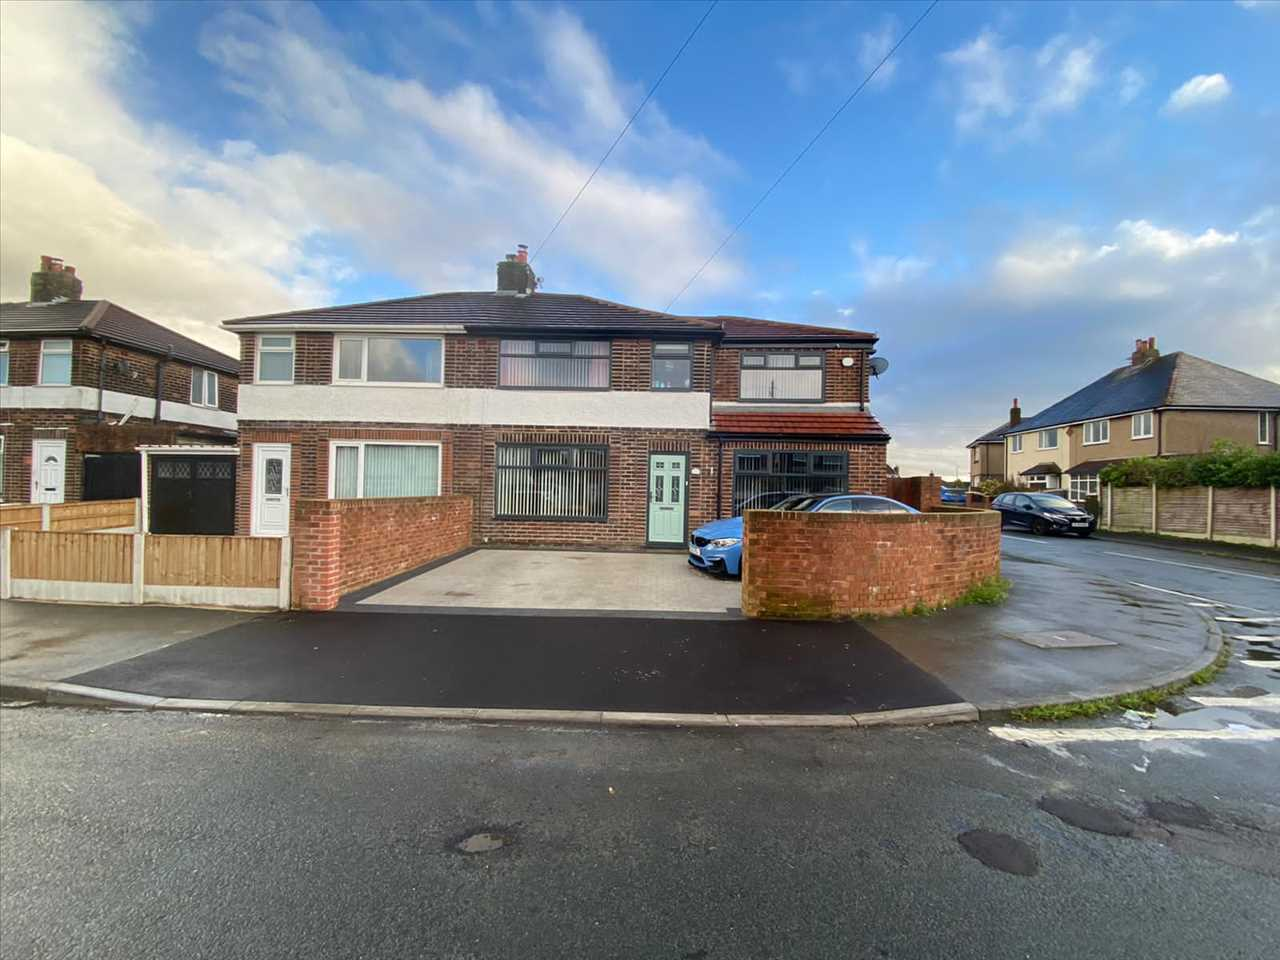 4 bed semi-detached for sale in Southdowns Road, Chorley - Property Image 1